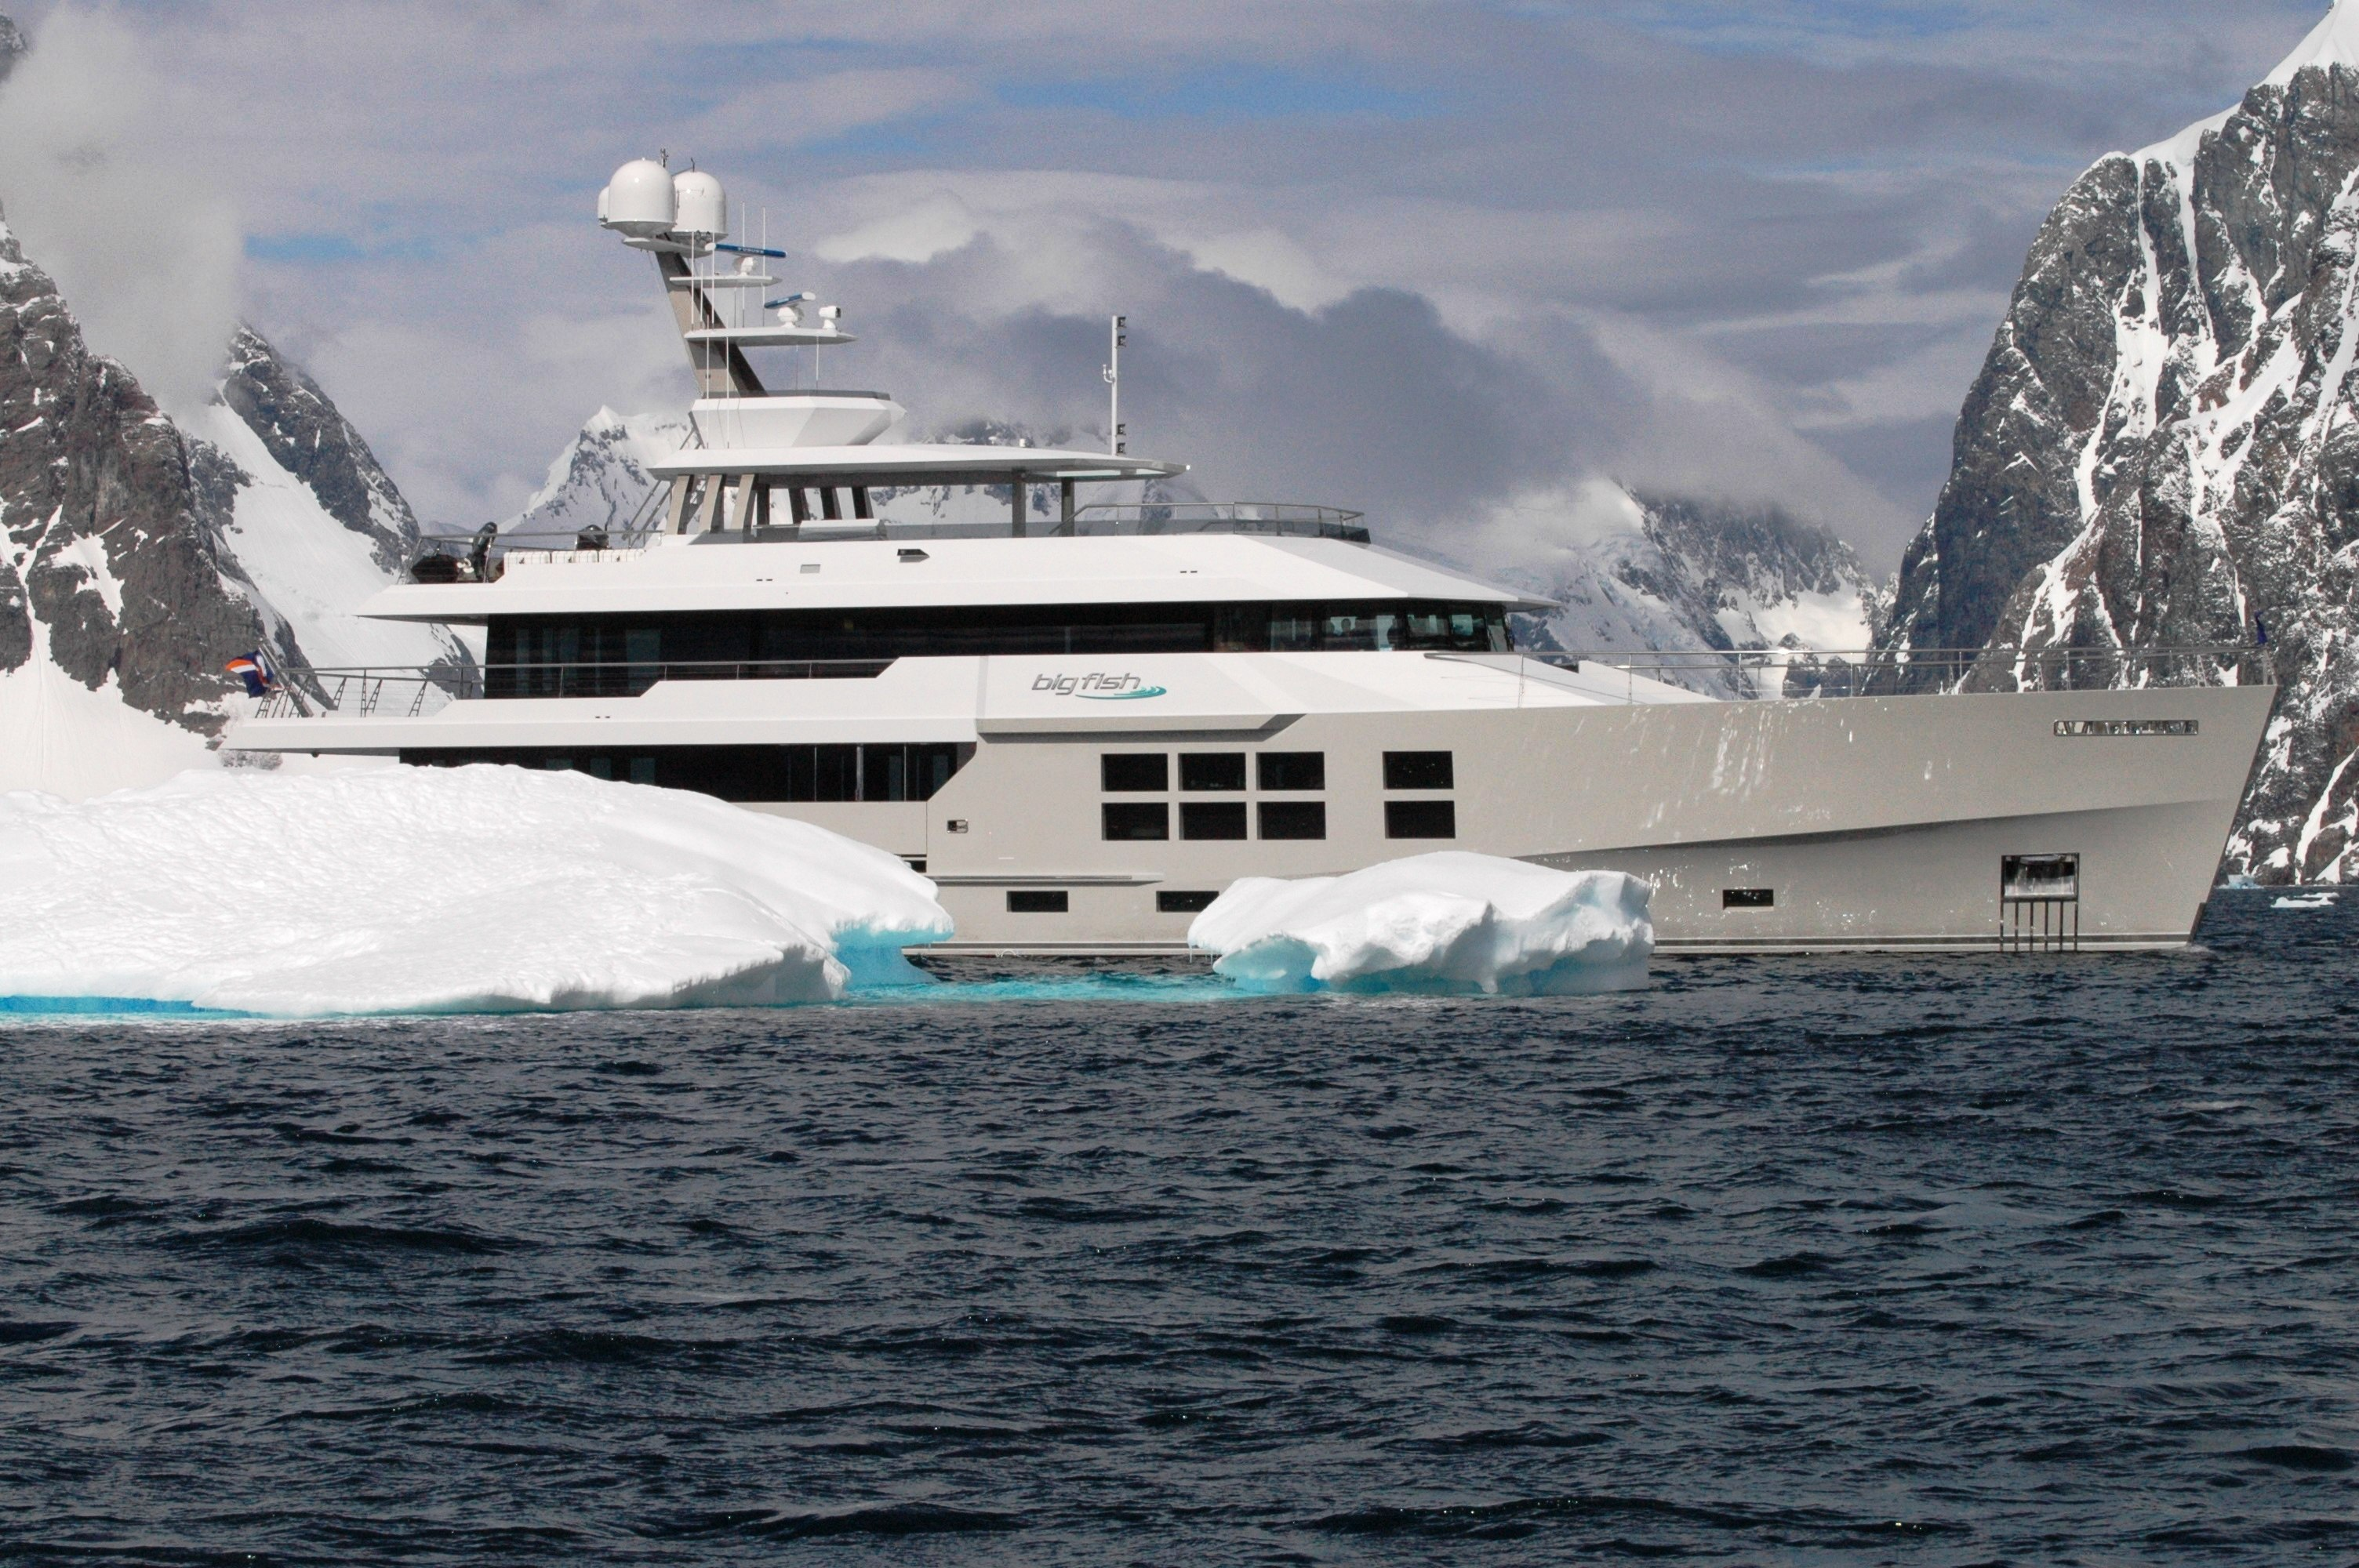 BIG FISH Yacht Charter Details McMullen Amp Wing CHARTERWORLD Luxury Superyachts